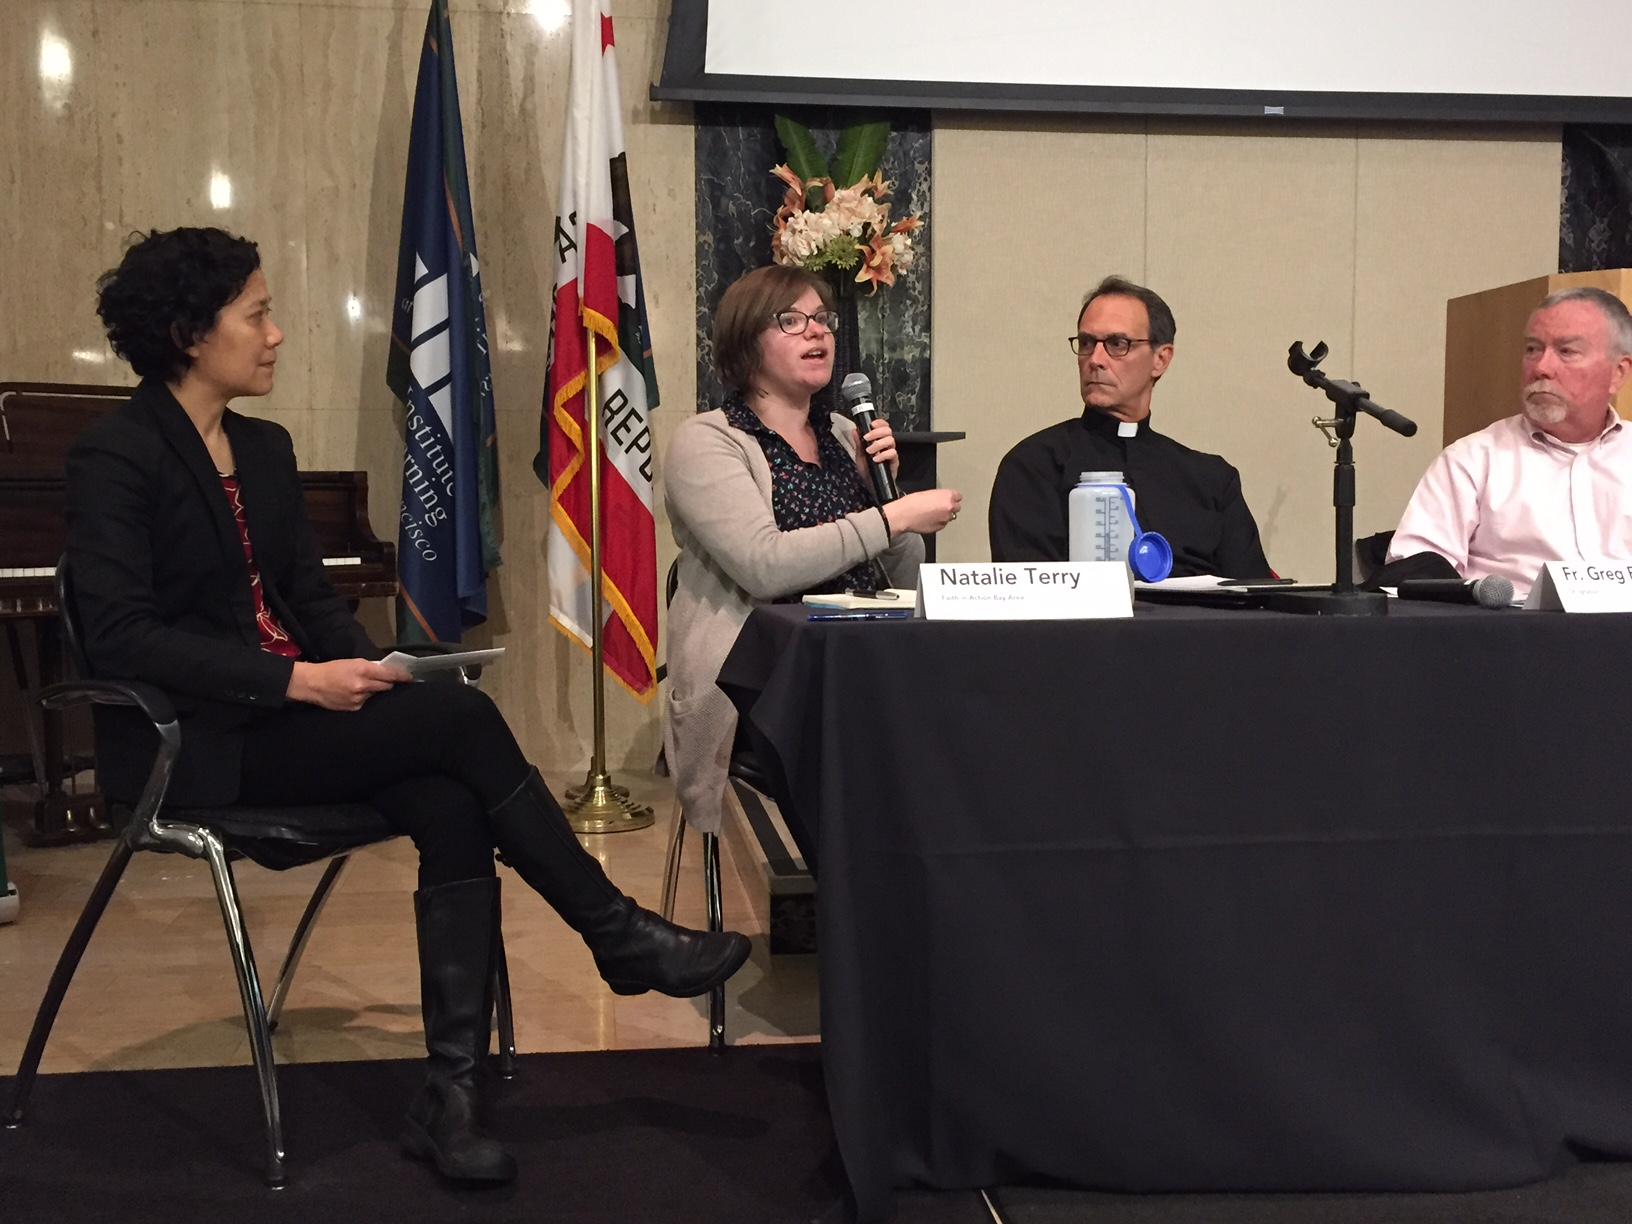 Professor Evelyn Ho moderating discussion about immigration and sanctuary